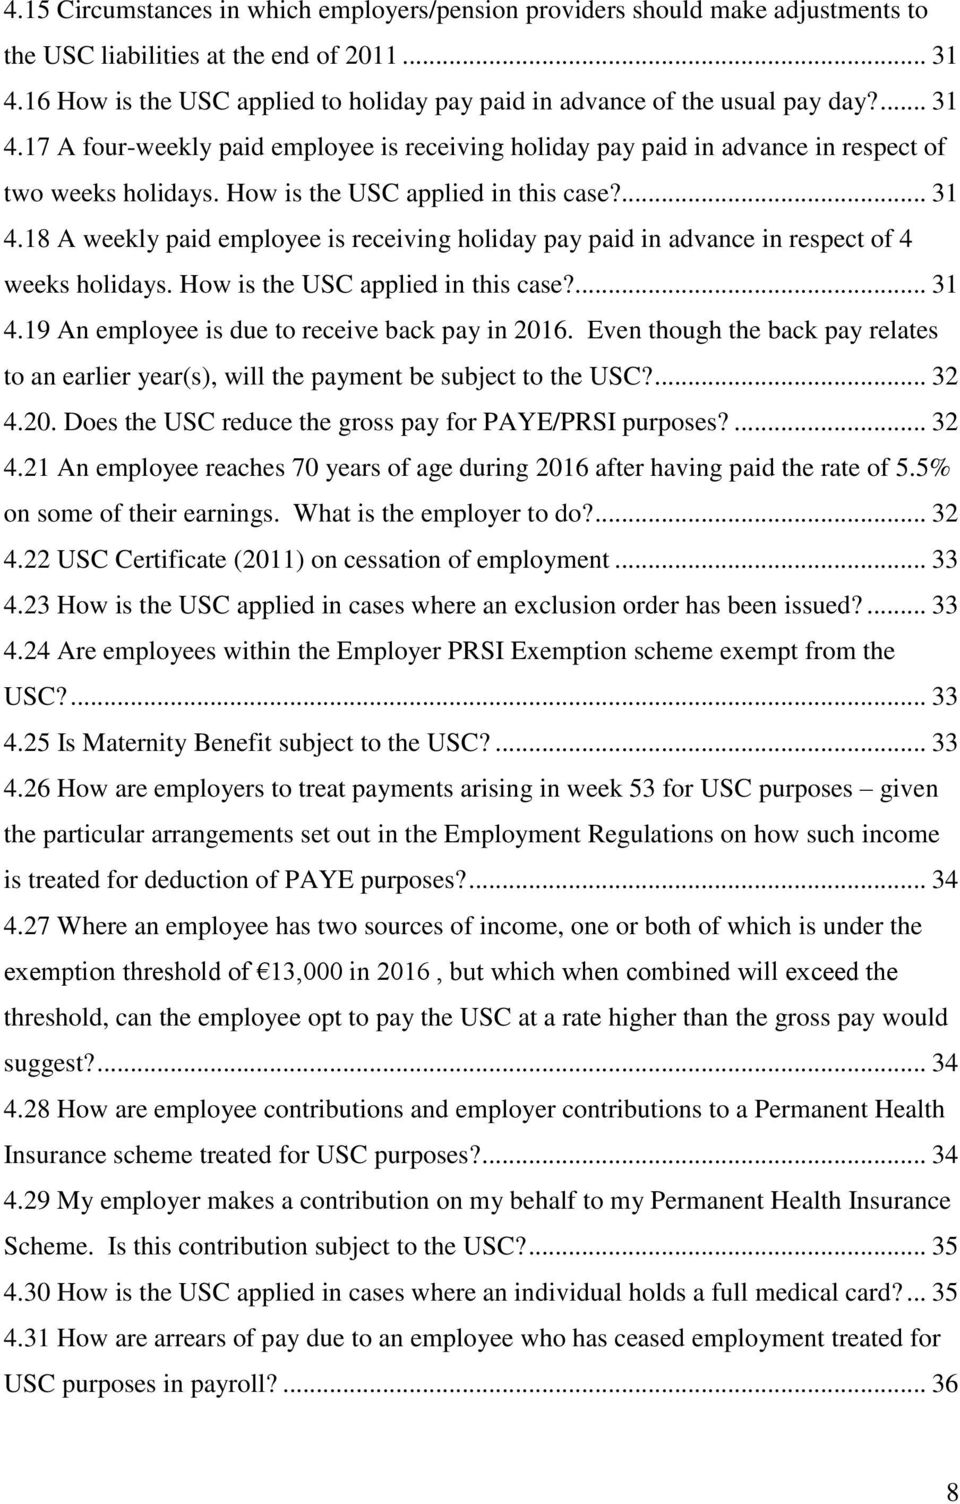 How is the USC applied in this case?... 31 4.18 A weekly paid employee is receiving holiday pay paid in advance in respect of 4 weeks holidays. How is the USC applied in this case?... 31 4.19 An employee is due to receive back pay in 2016.